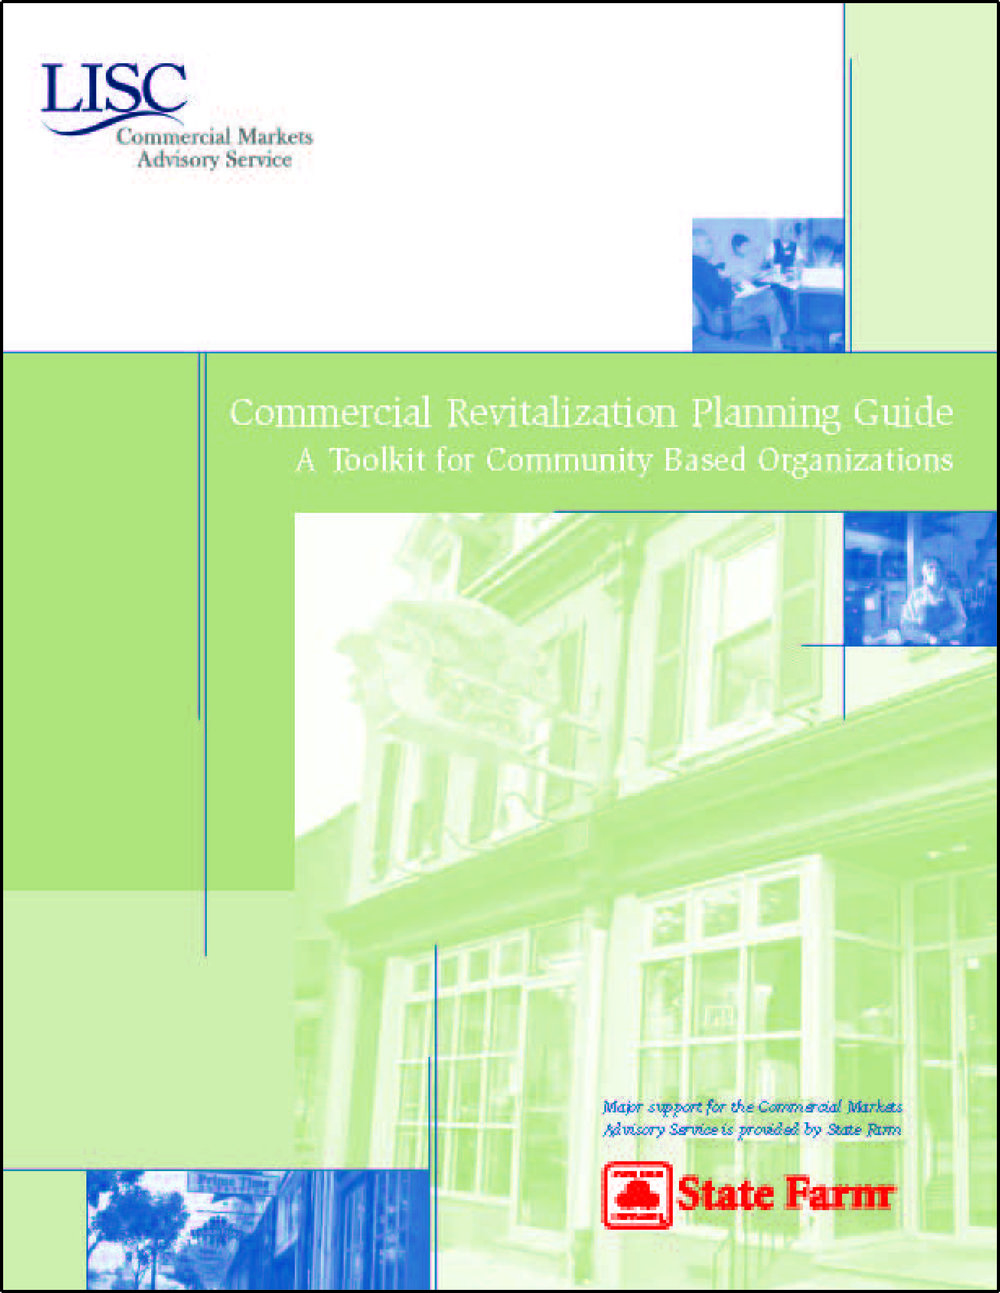 Commercial Revitalization Planning Guide (Collaborative Publication)